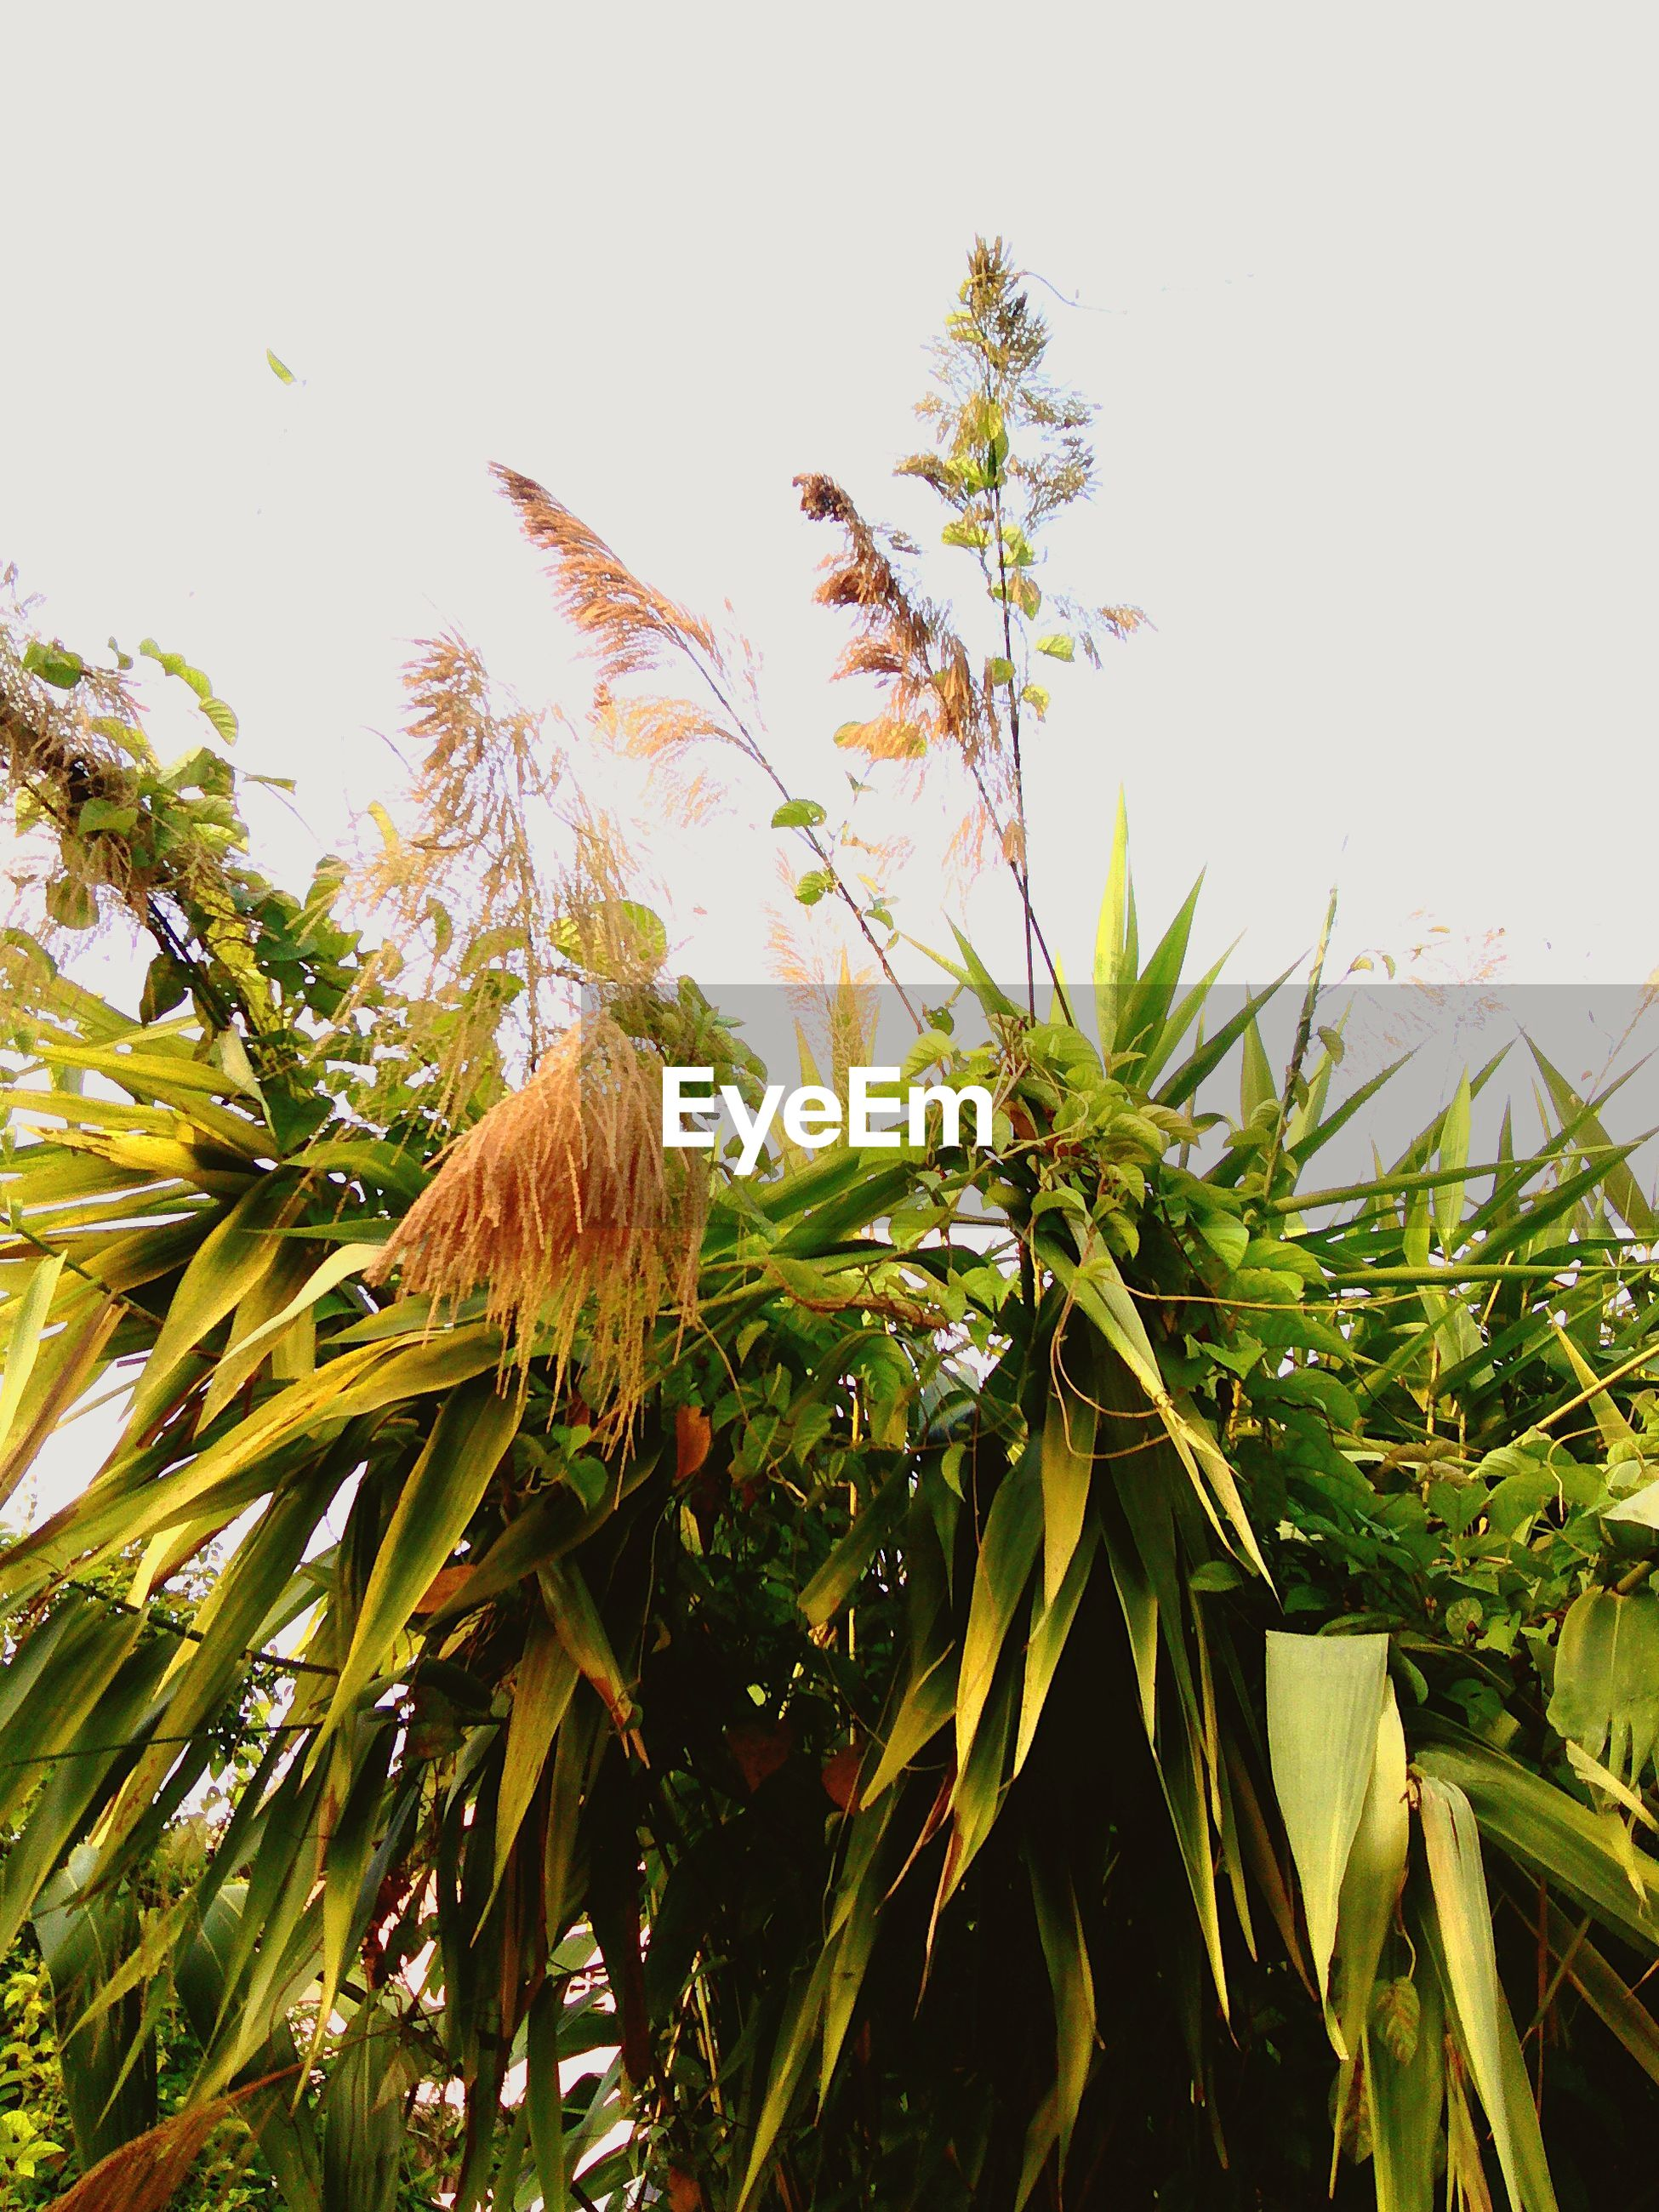 growth, low angle view, leaf, palm tree, clear sky, tree, nature, green color, plant, beauty in nature, sky, green, tranquility, palm leaf, branch, day, outdoors, no people, close-up, freshness